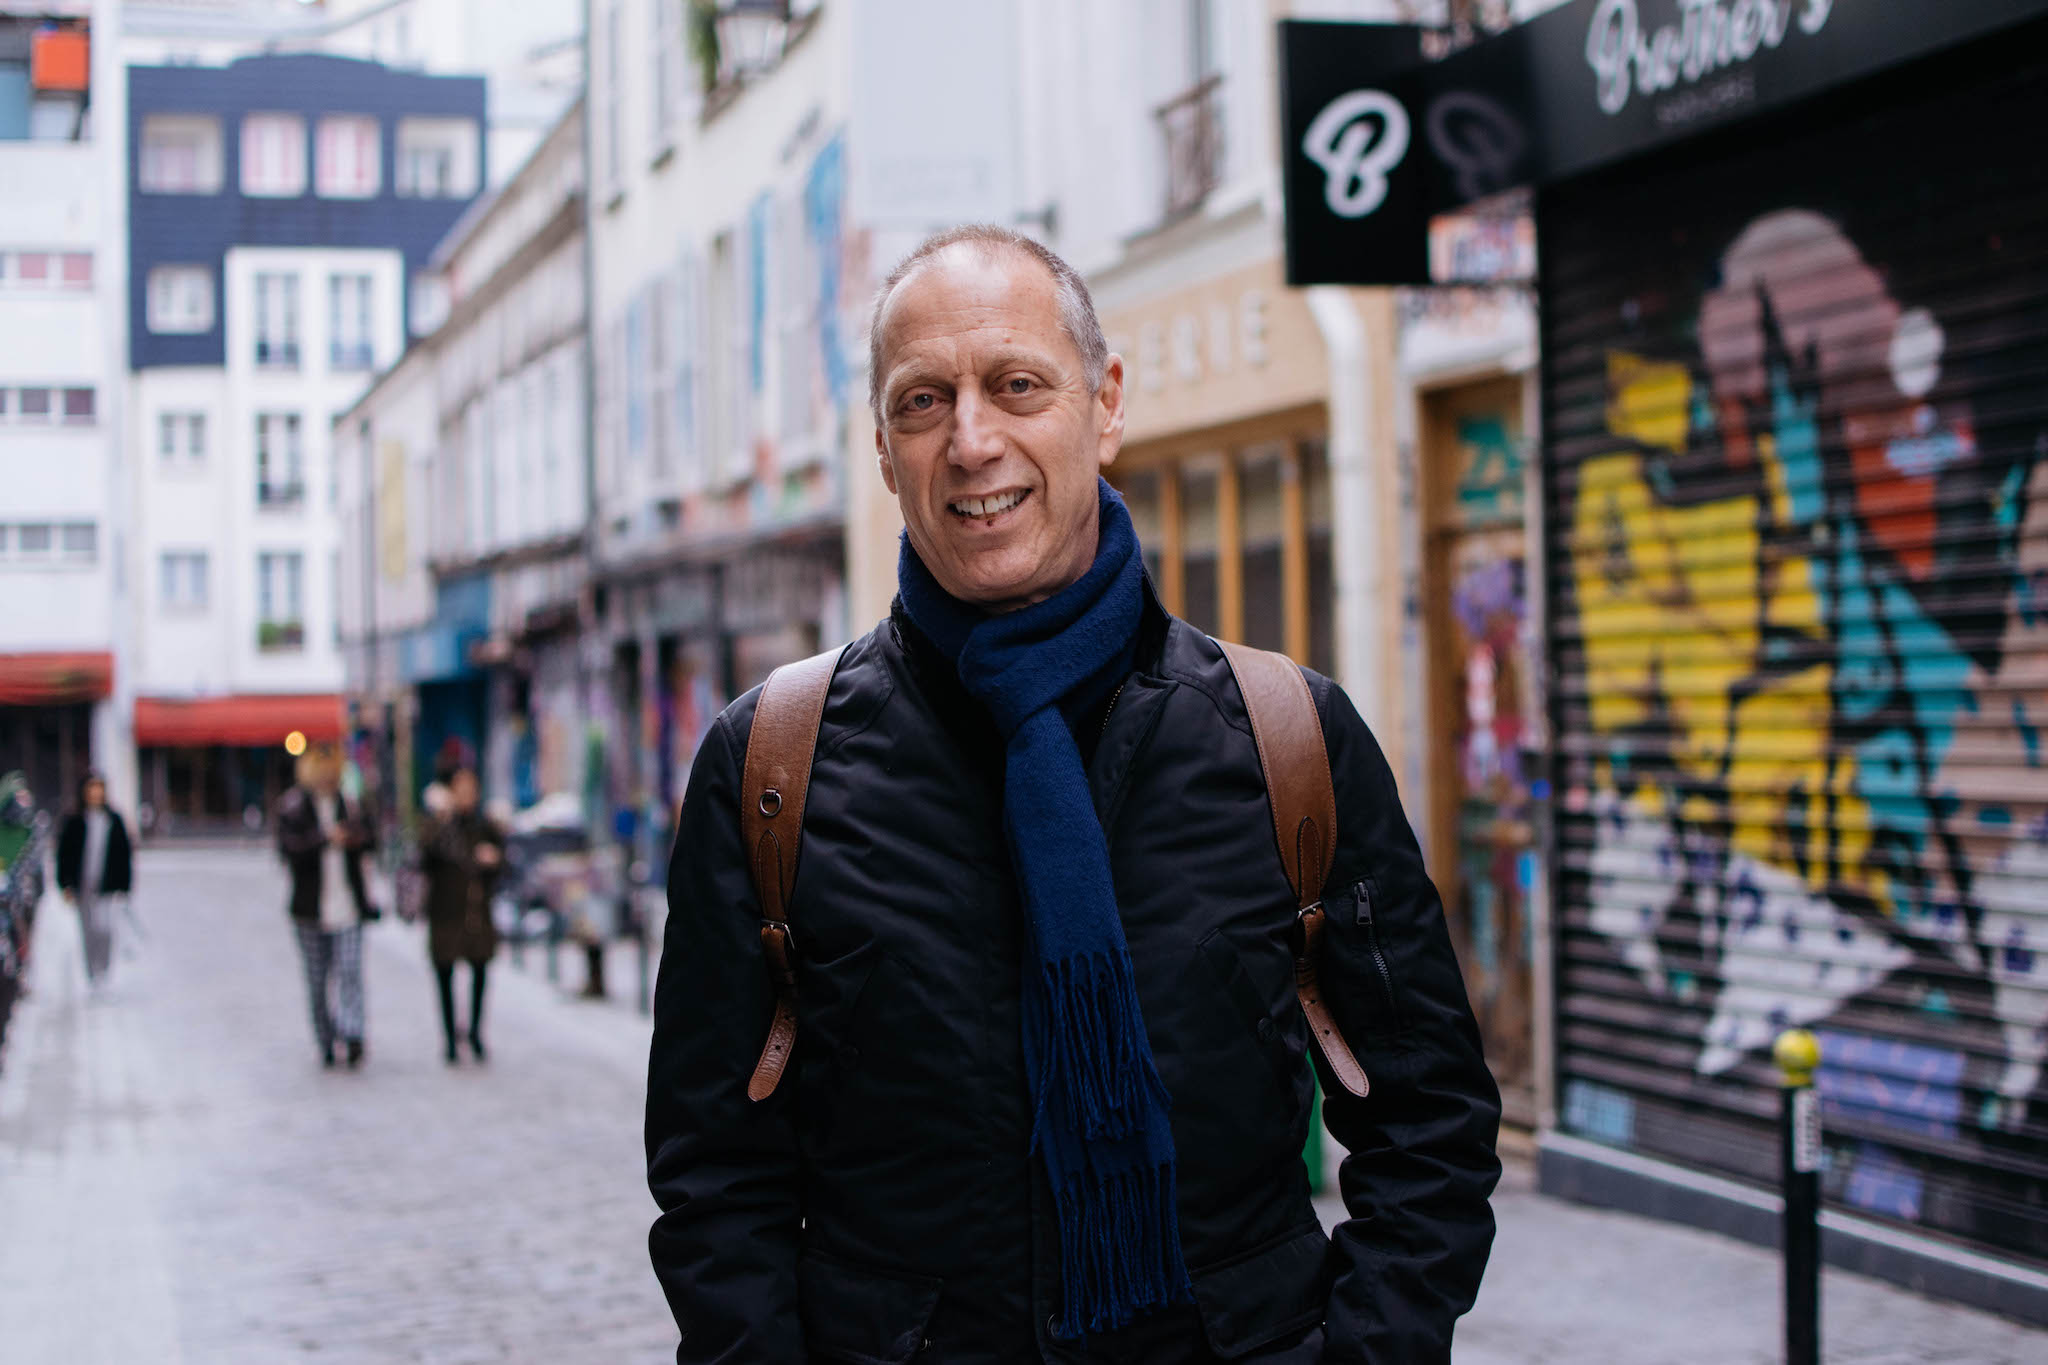 A portrait of David Lebovitz standing with a smile in the middle of a street in Paris' diverse Bellville neighborhood.